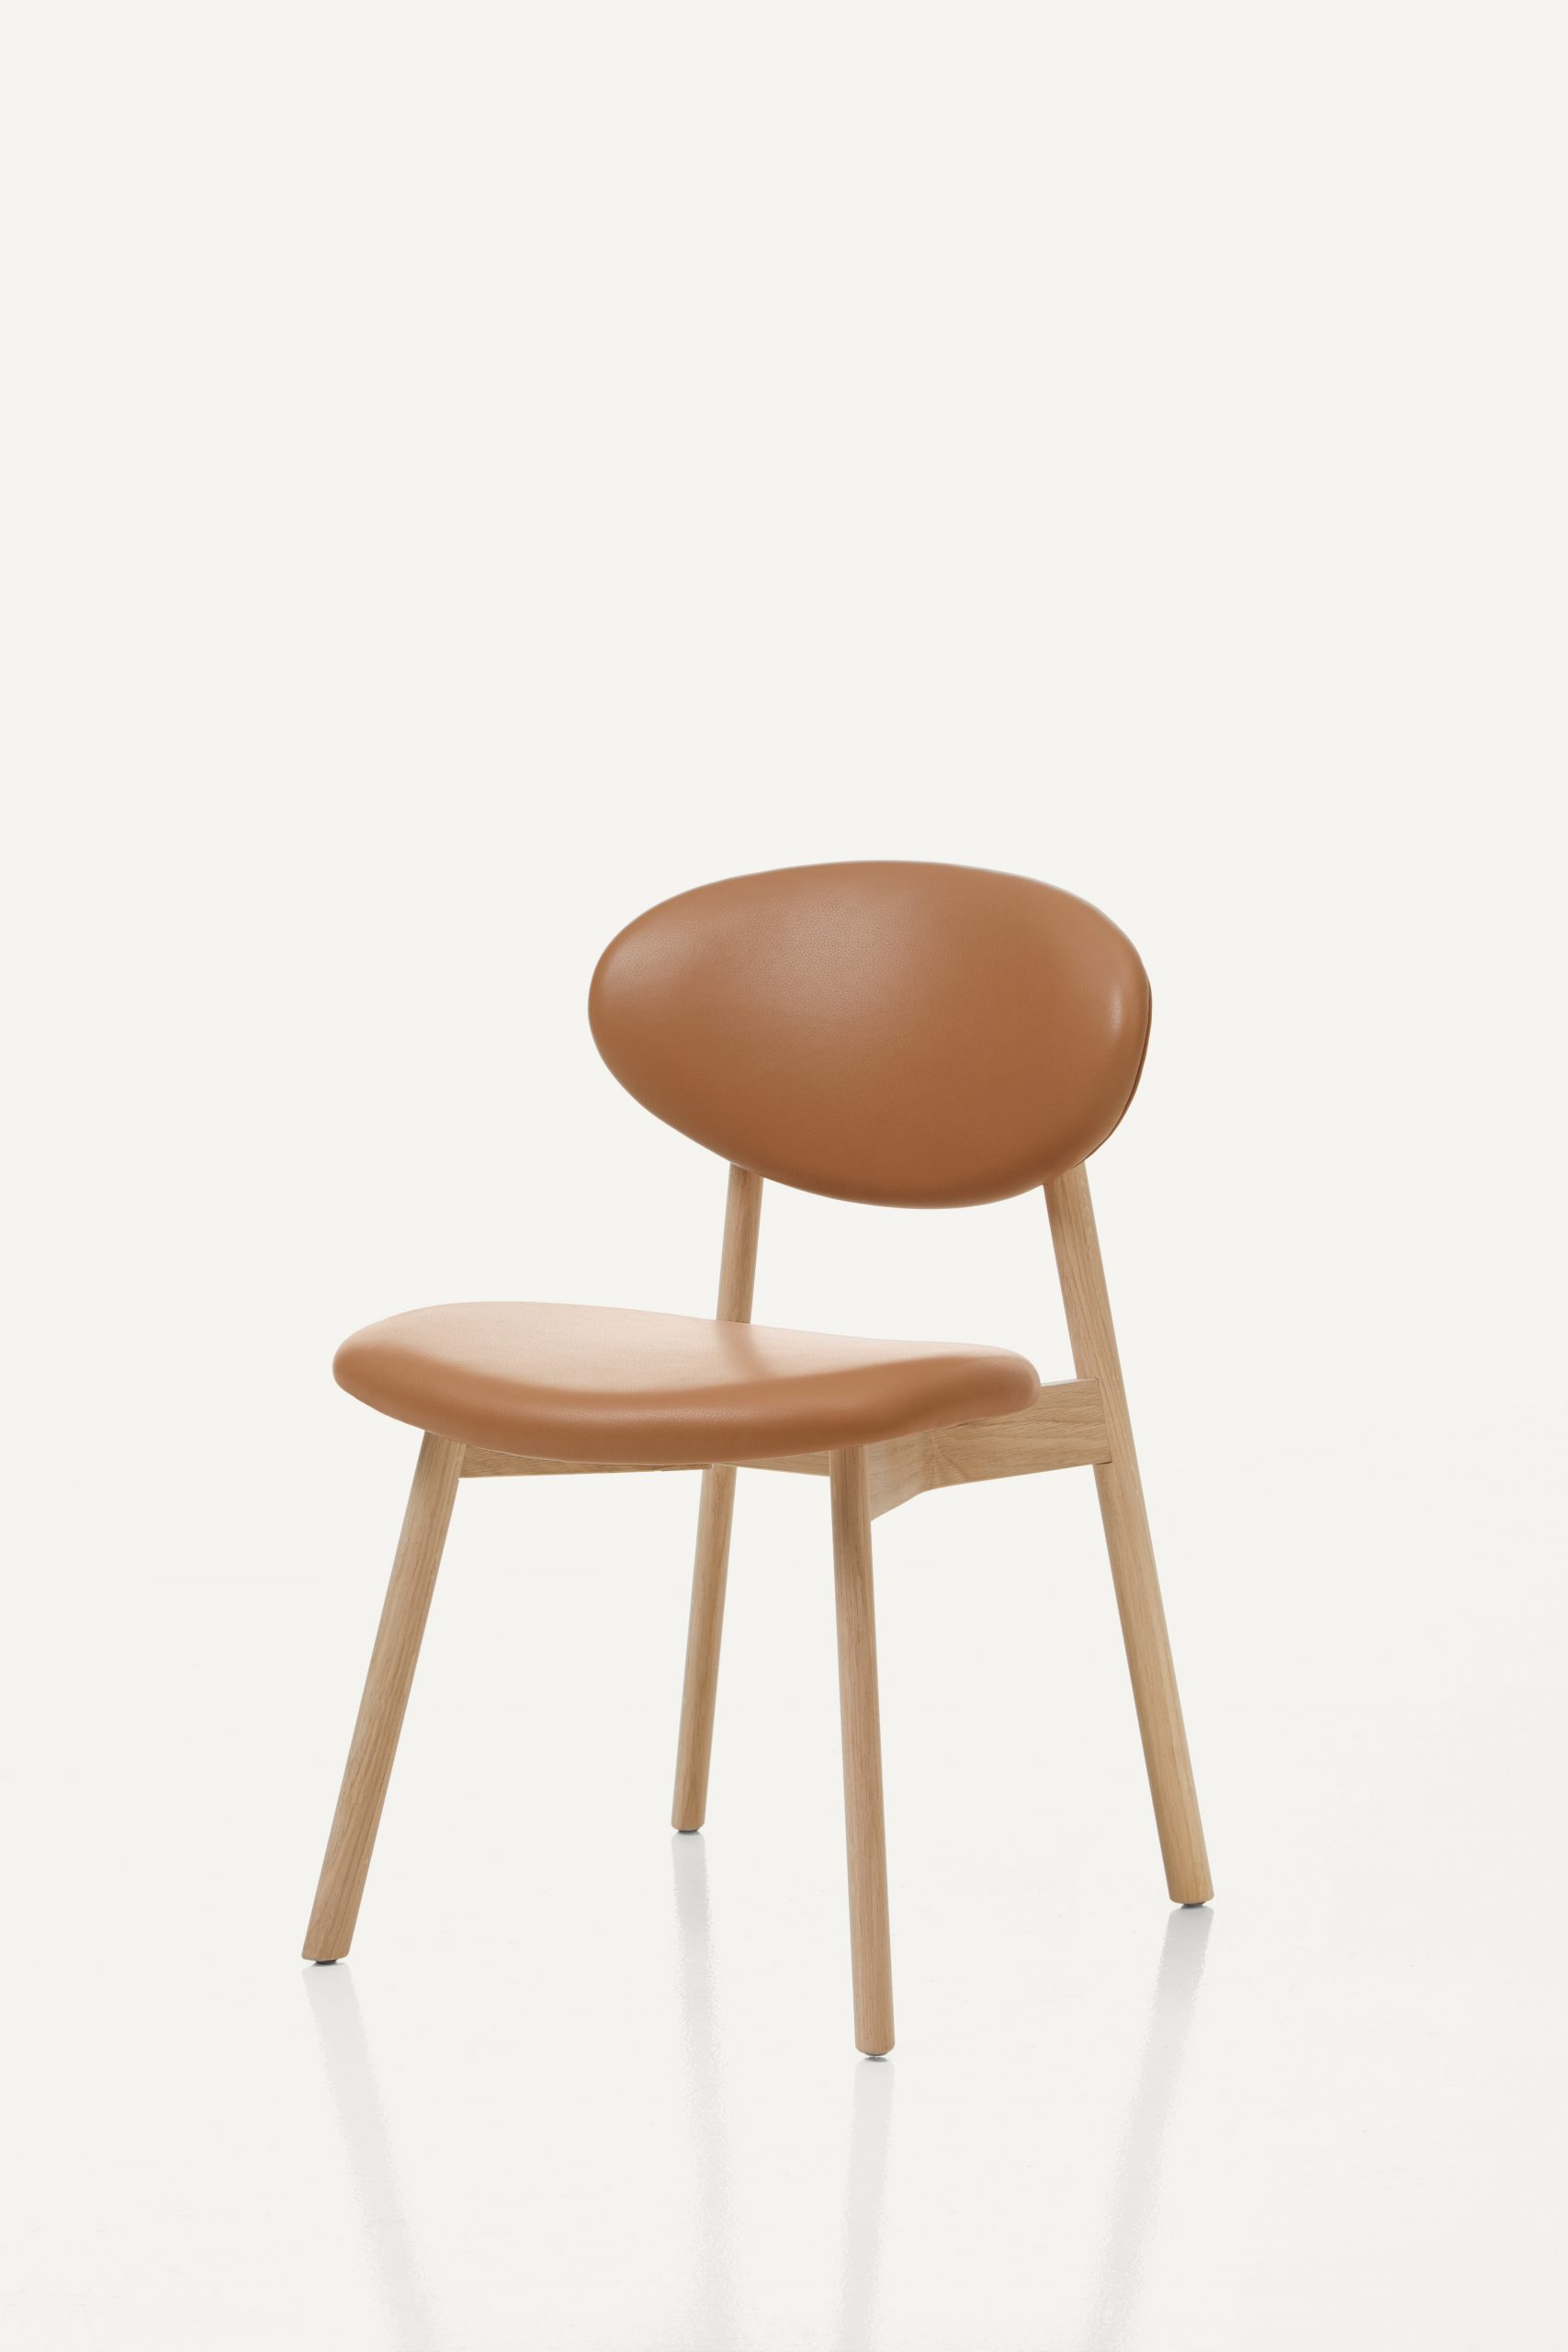 CB-61 Ovoid Chair by BassamFellows